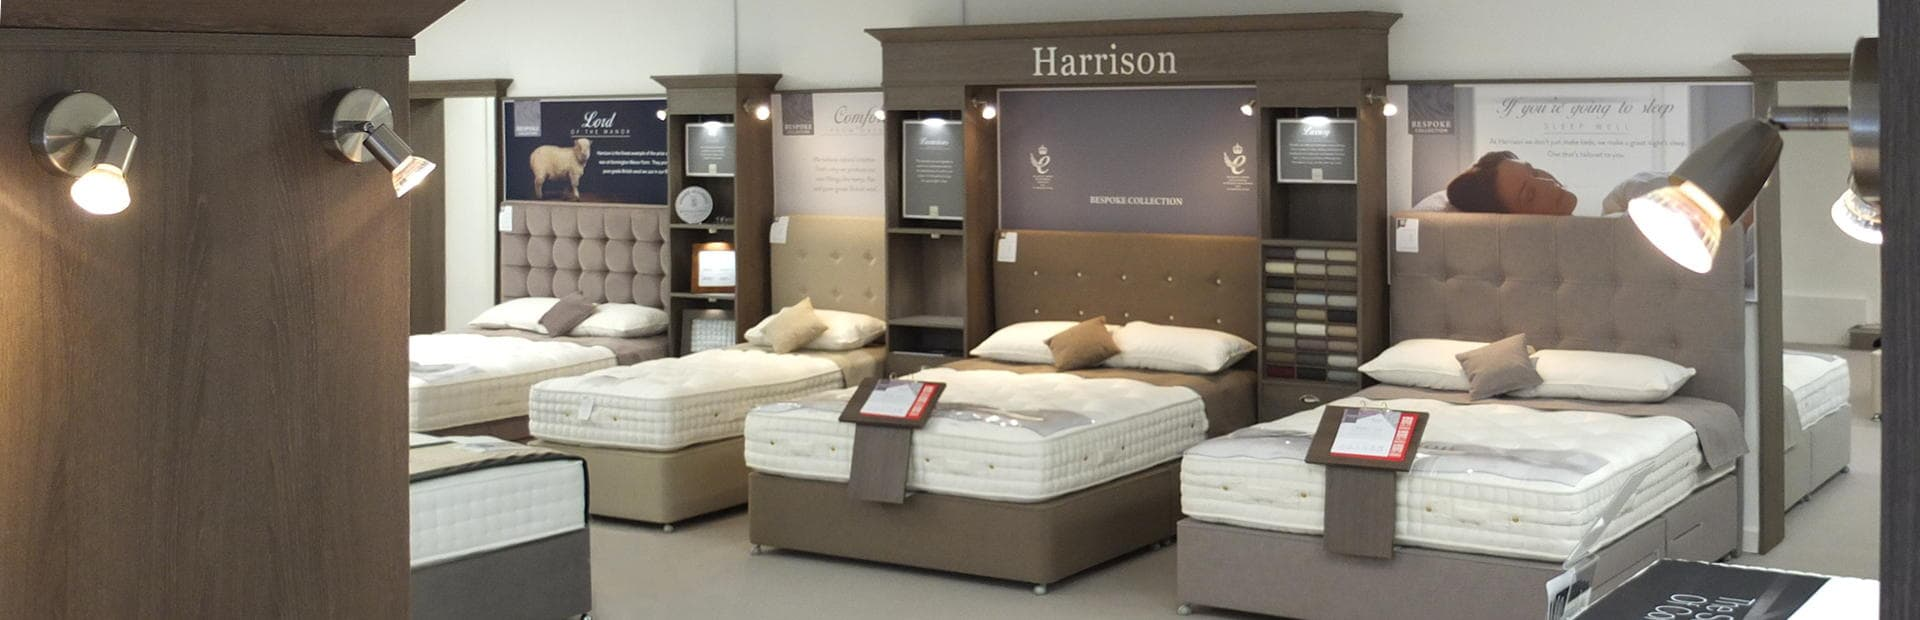 Sleep Matters Beds Huddersfield Bed Showroom